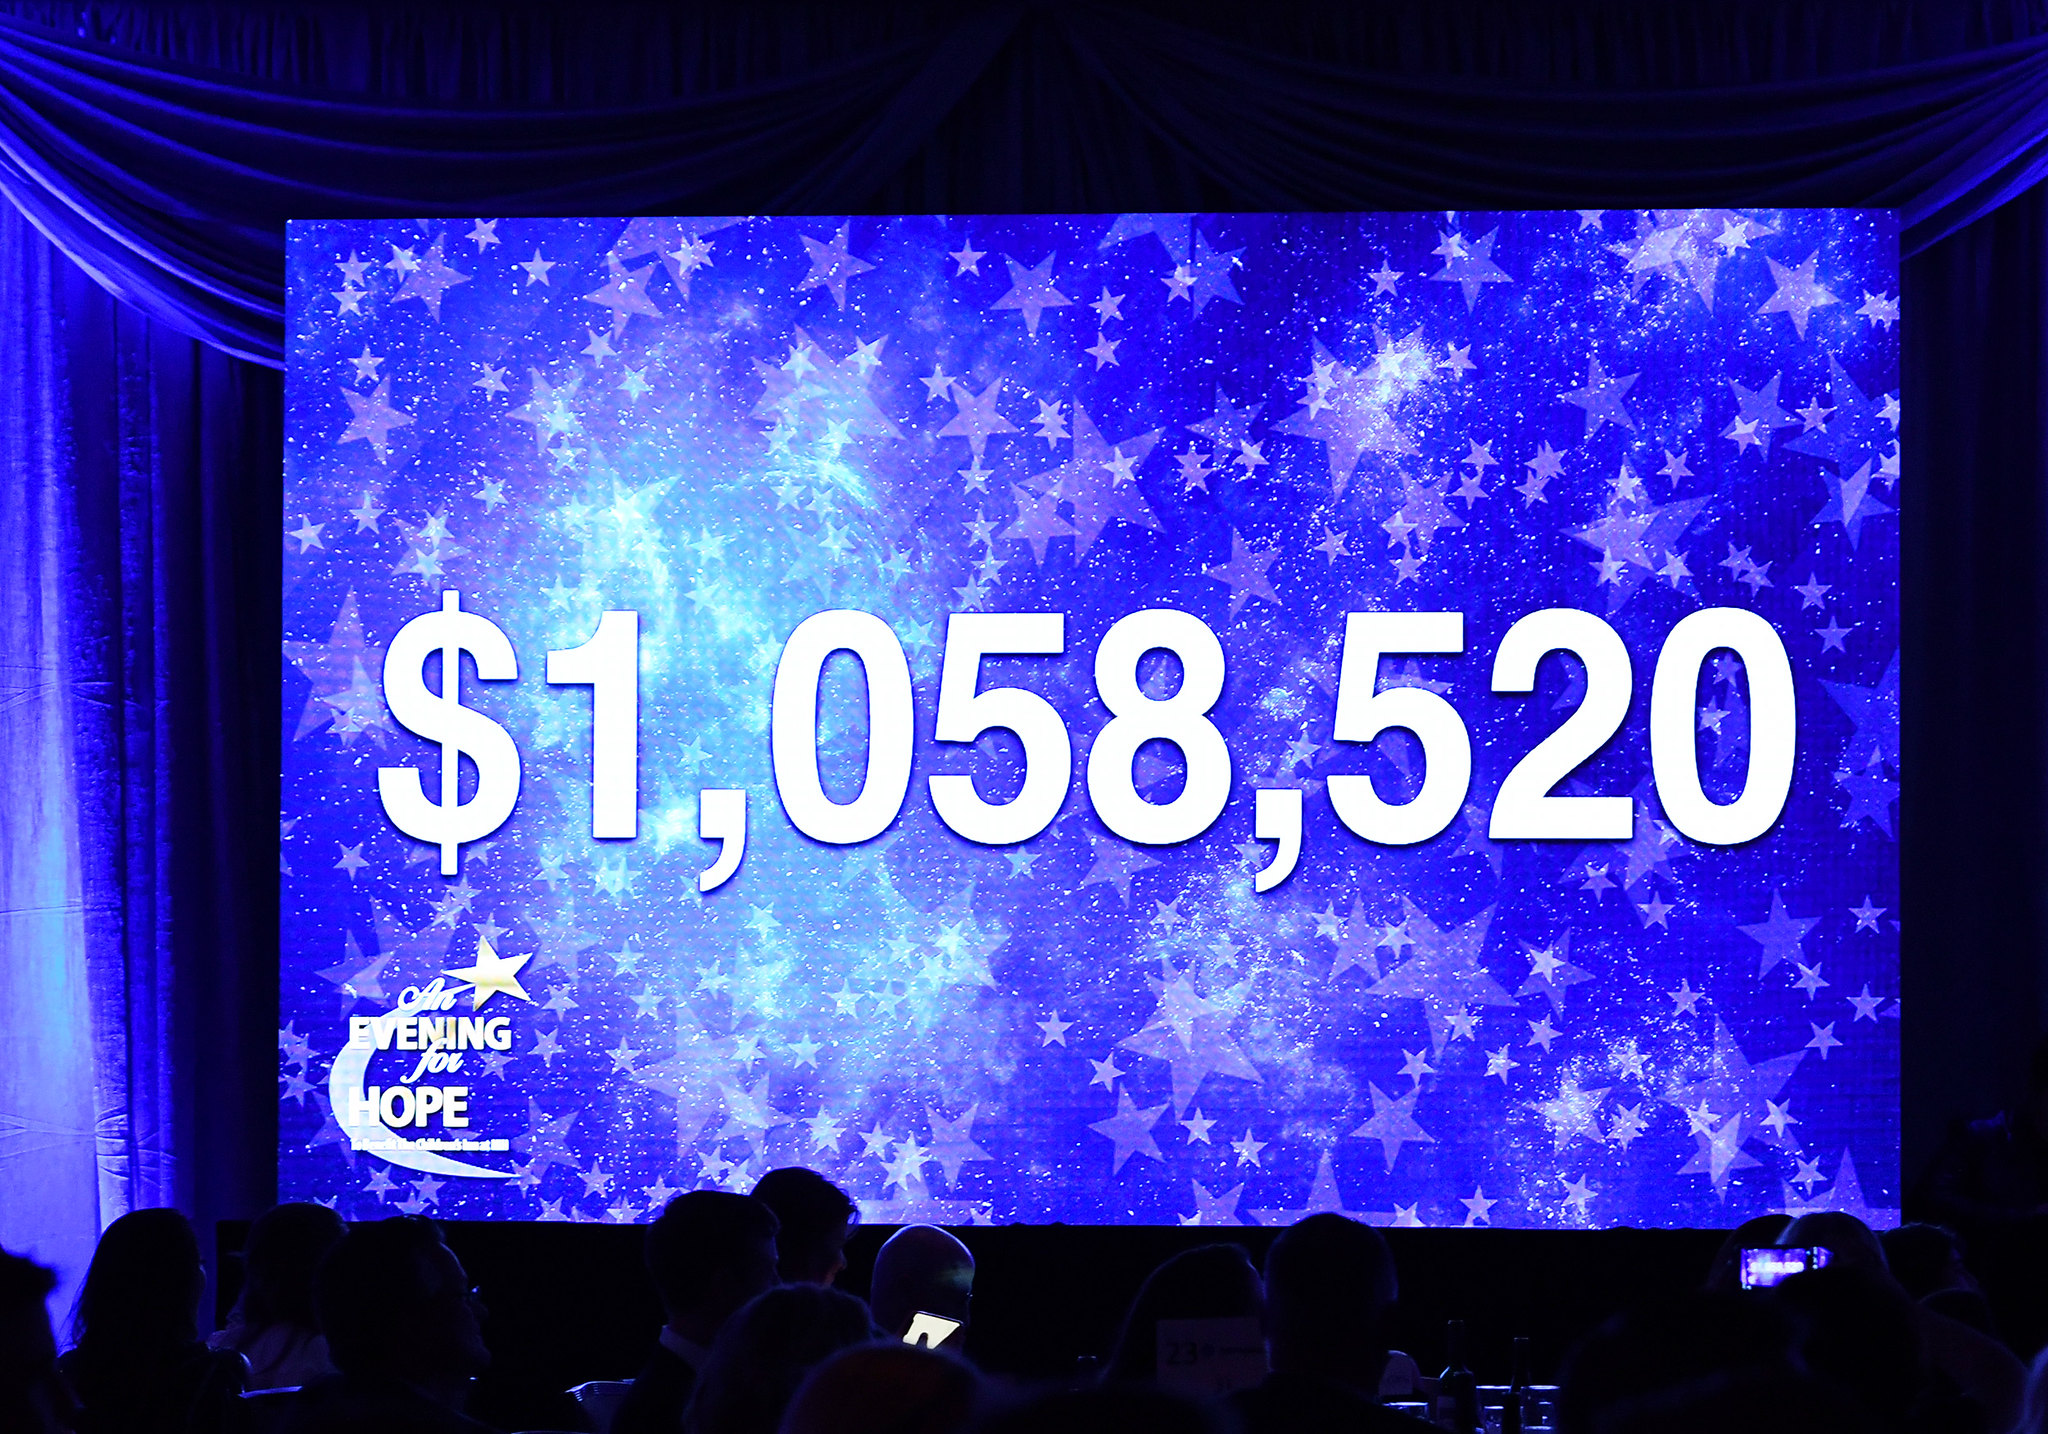 The final, over 1 million dollar total at An Evening for Hope